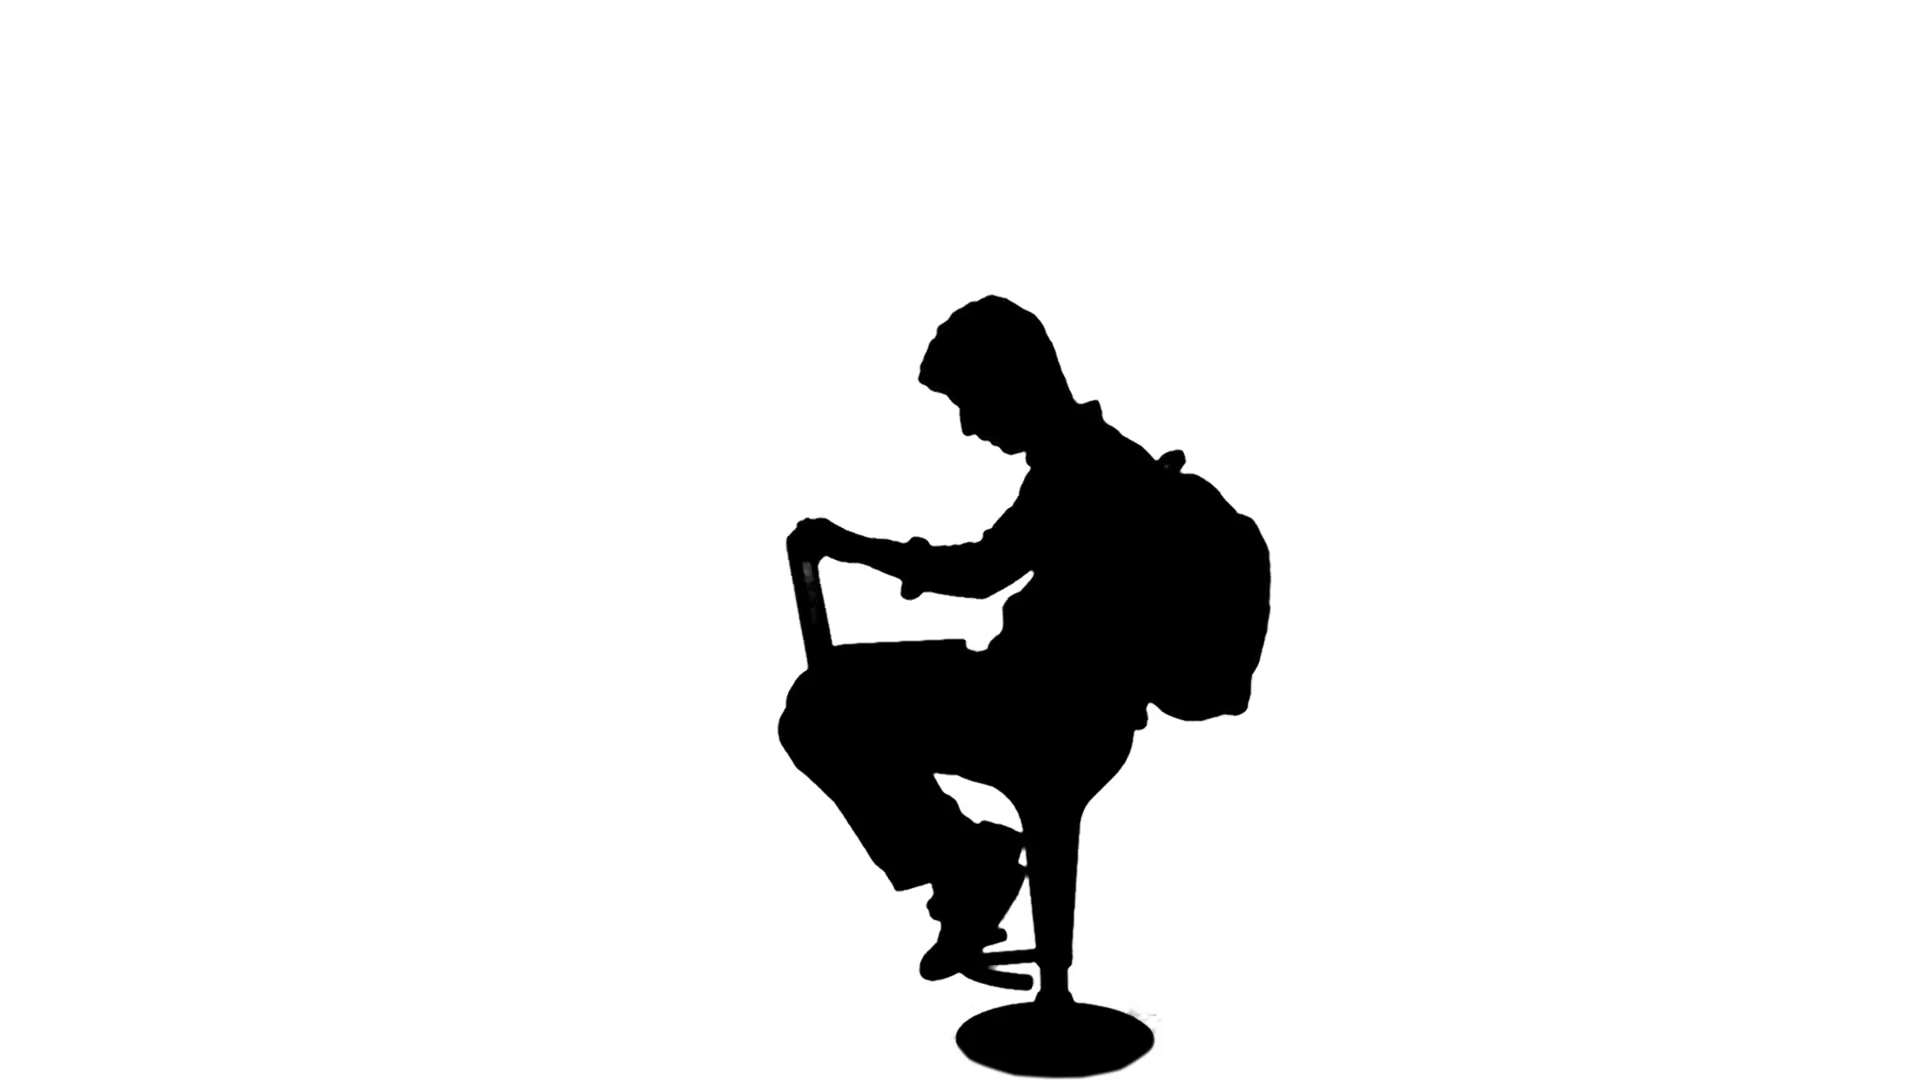 1920x1080 University Student Work Laptop Silhouette